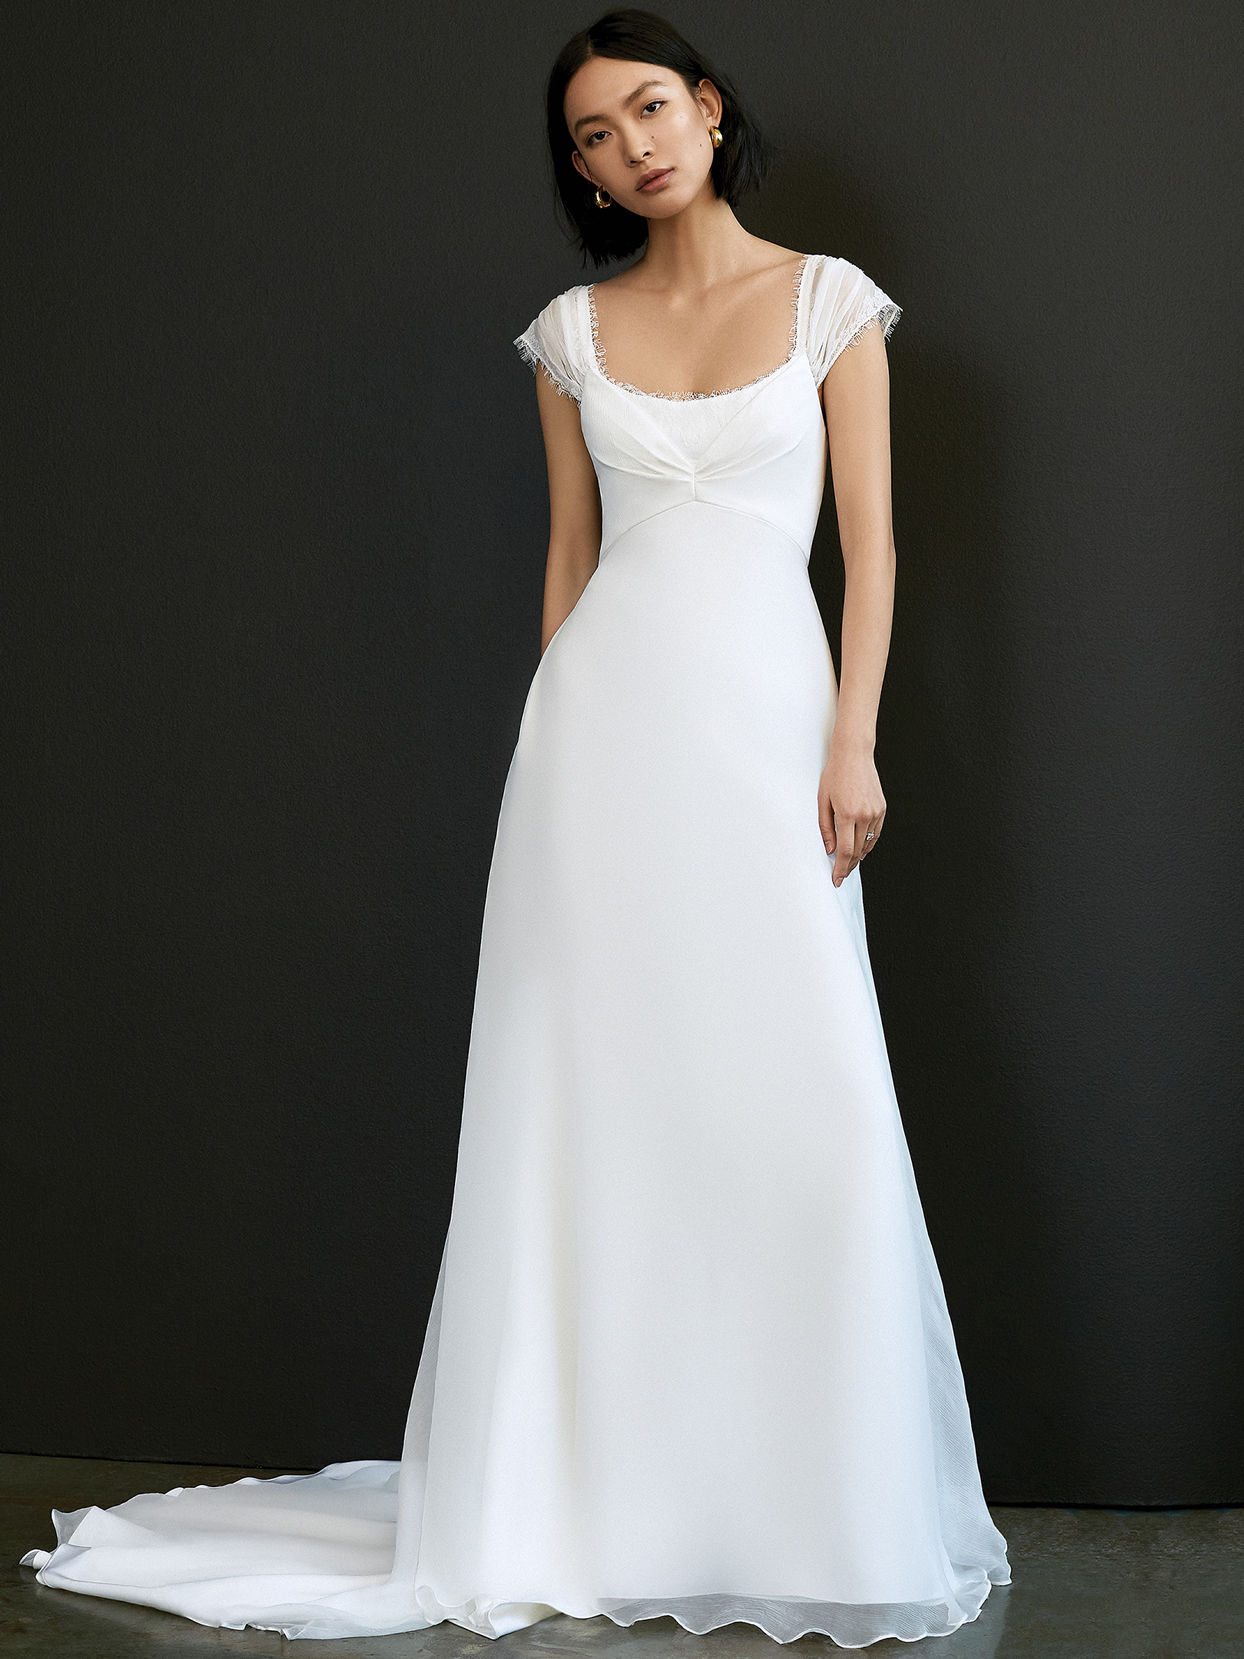 savannah miller cap sleeve scoop neck wedding dress spring 2021